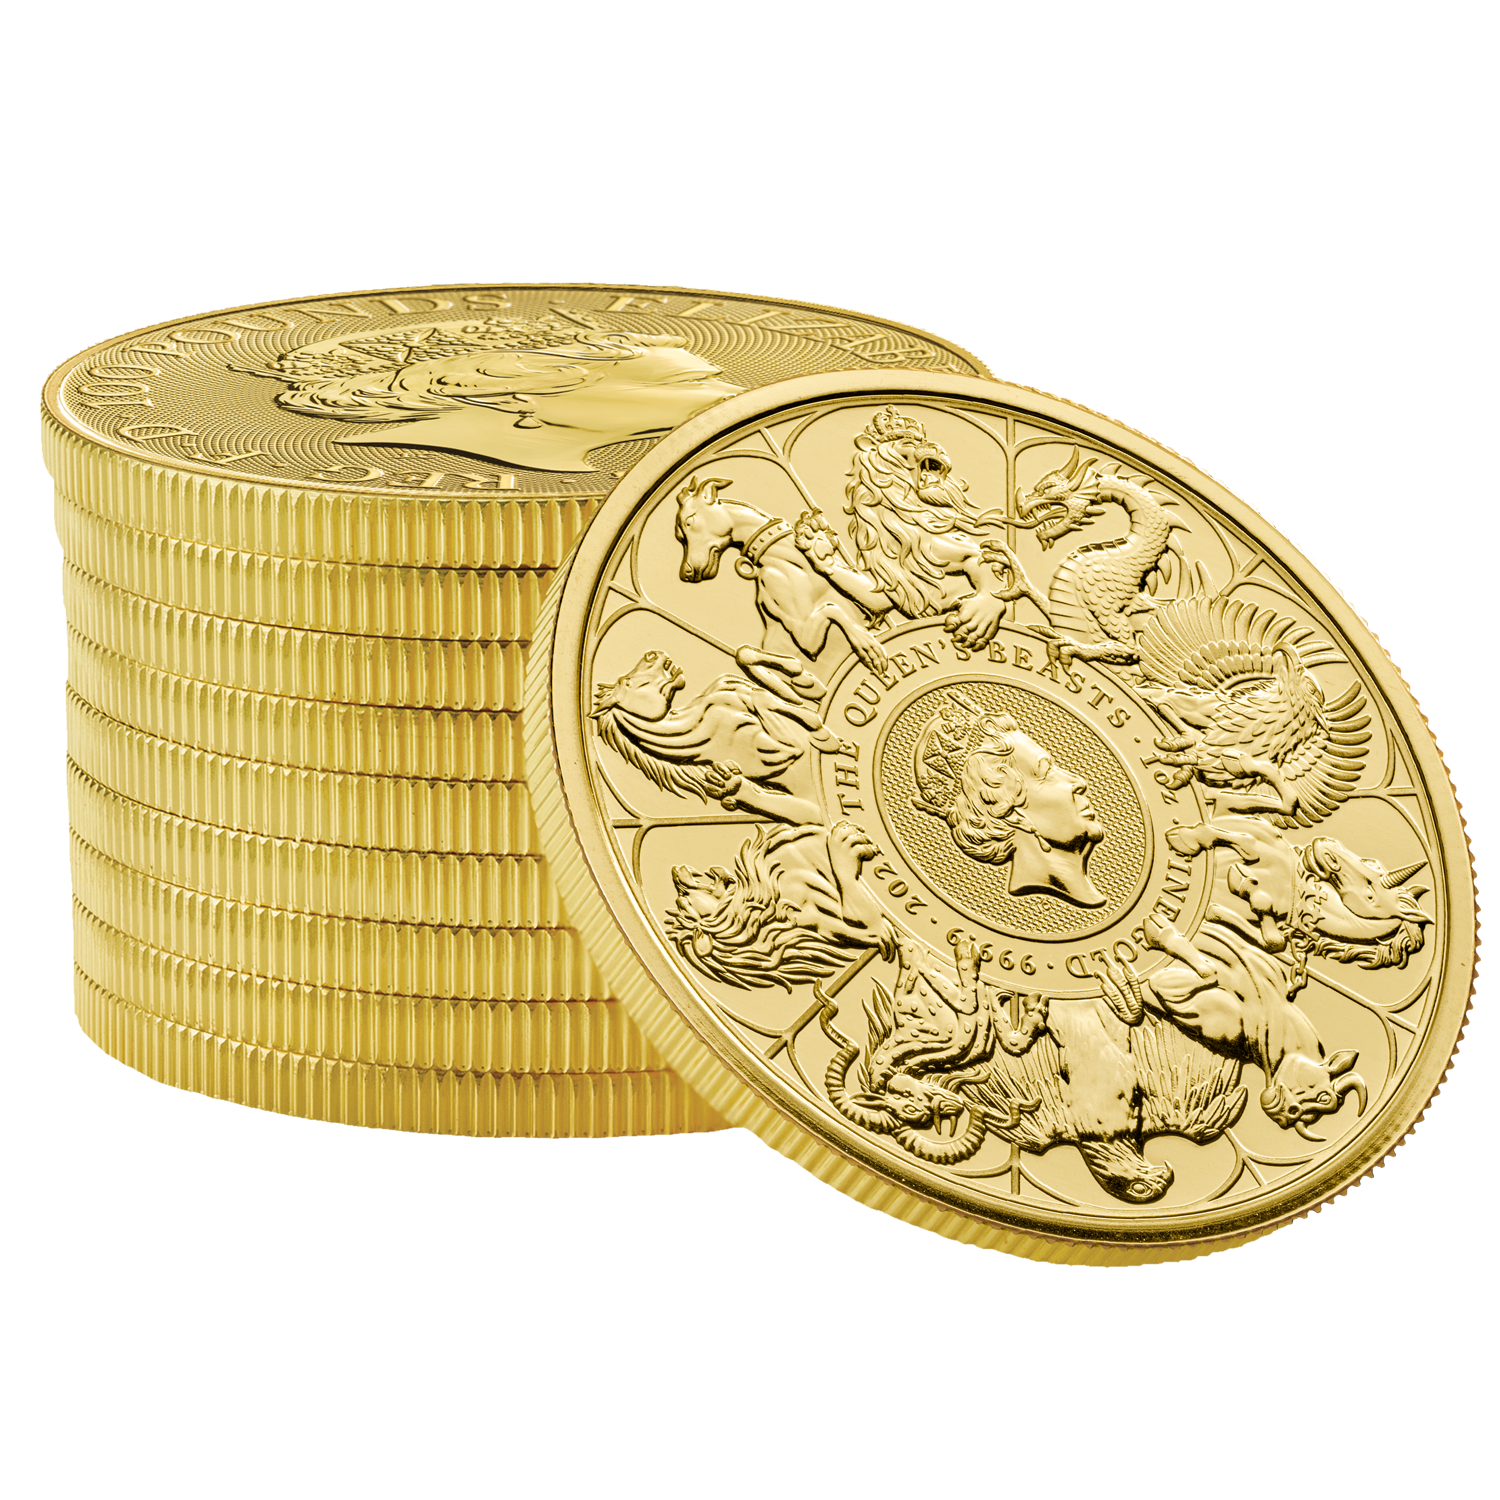 Queen's Beasts Completer Coin 1 oz Gold 2021